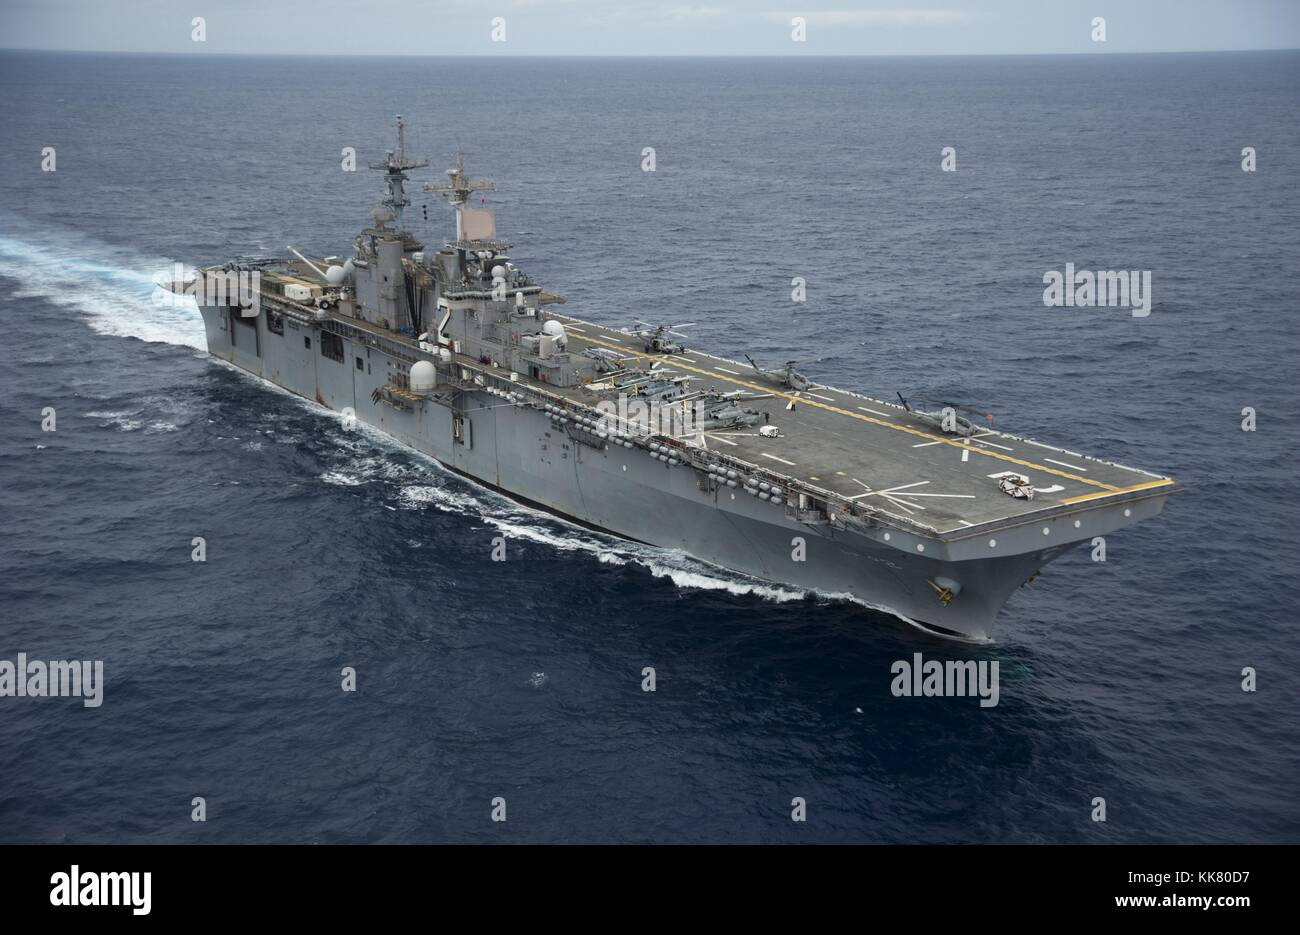 The amphibious assault ship USS Essex LHD 2 transits through the Pacific Ocean, 2012. Image courtesy Mass Communication Stock Photo